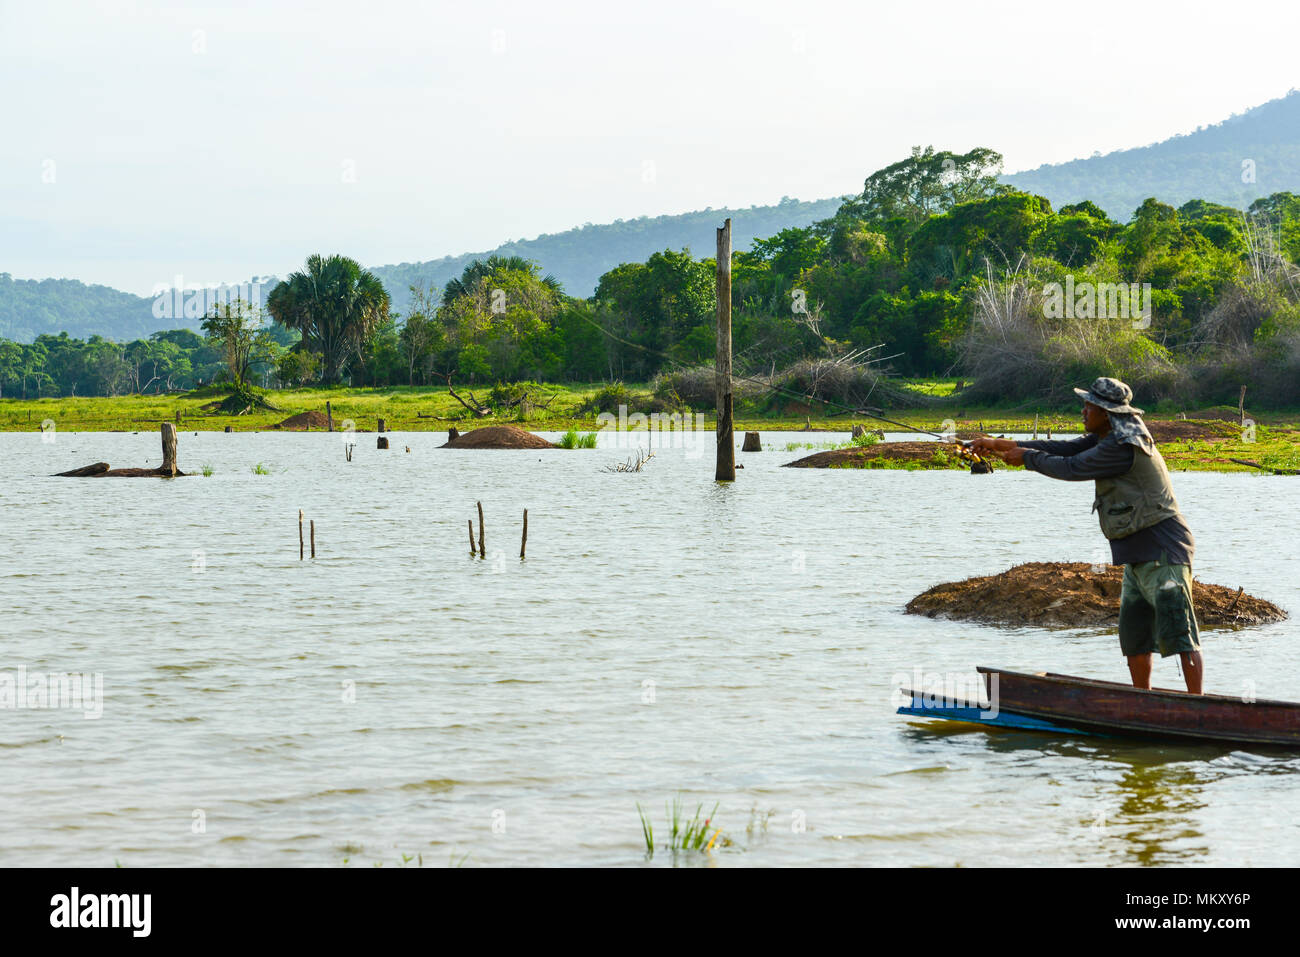 Chachoengsao, Thailand - December 8, 2011, Fisherman fishing by using fishing pole to fish in rural swamp in Chachoengsao, Thailand - Stock Image